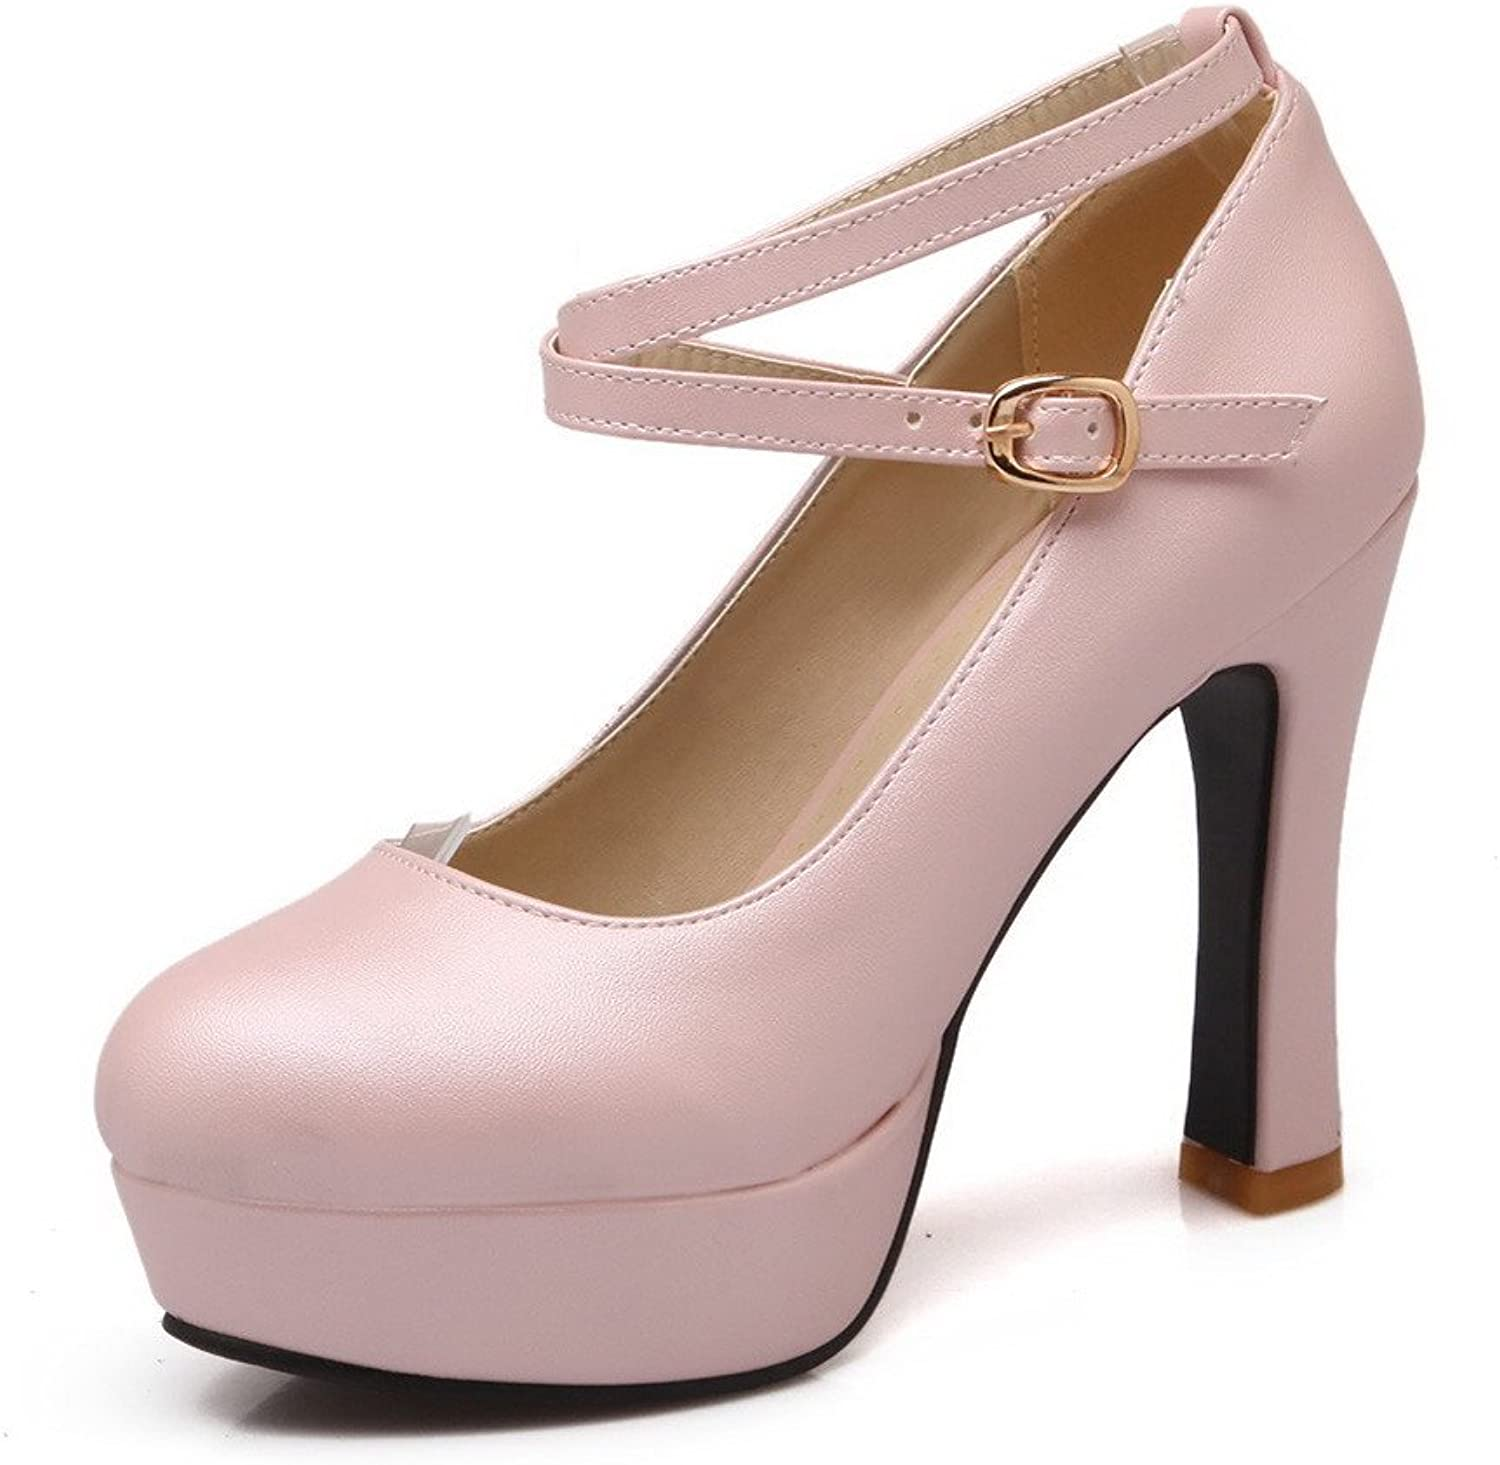 AllhqFashion Women's Solid Soft Material High Heels Buckle Round Closed Toe Pumps shoes